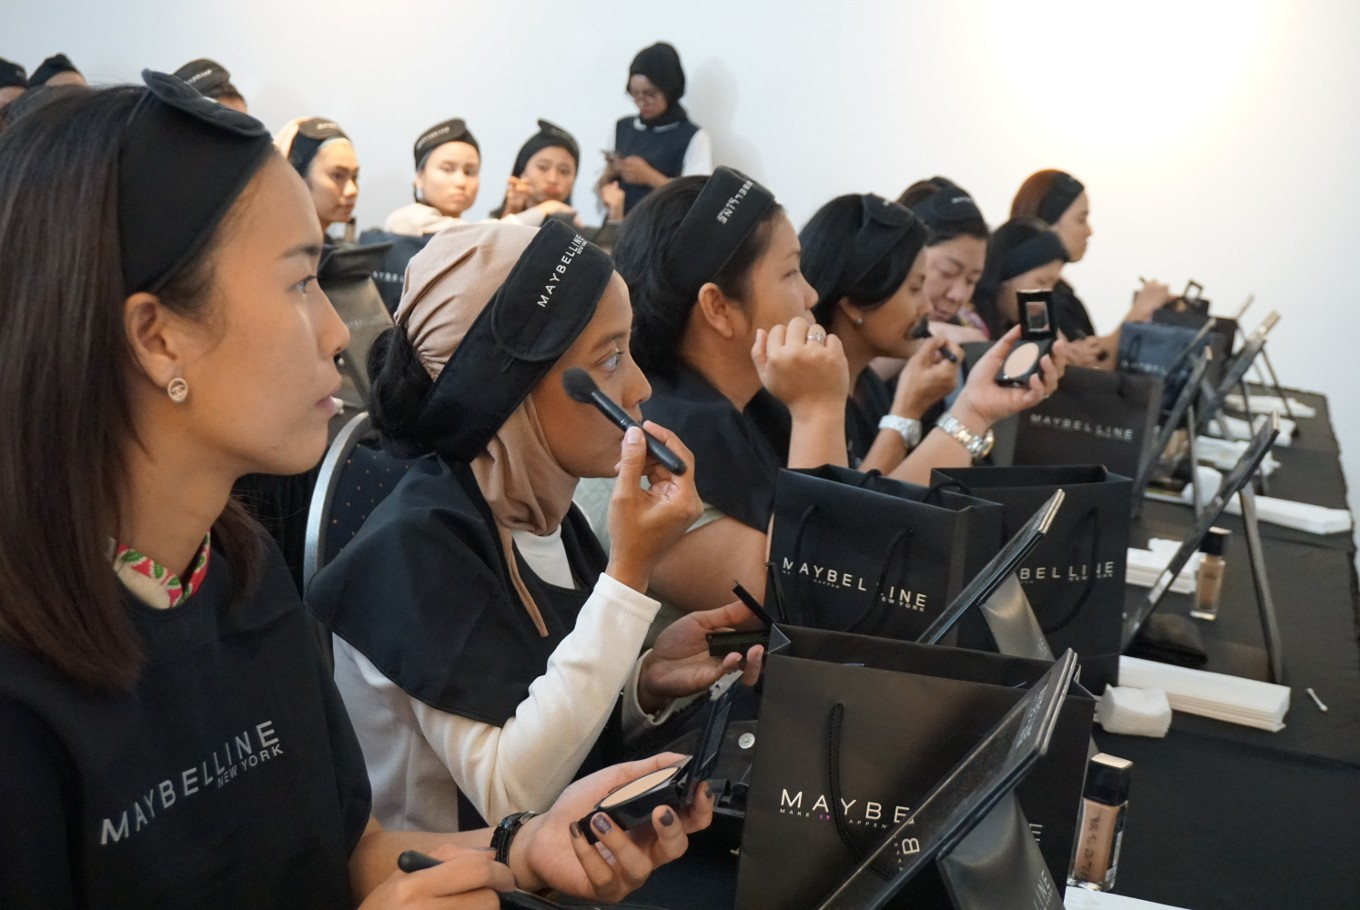 L'Oreal reaches out to hearing impaired with makeup class, new sign language